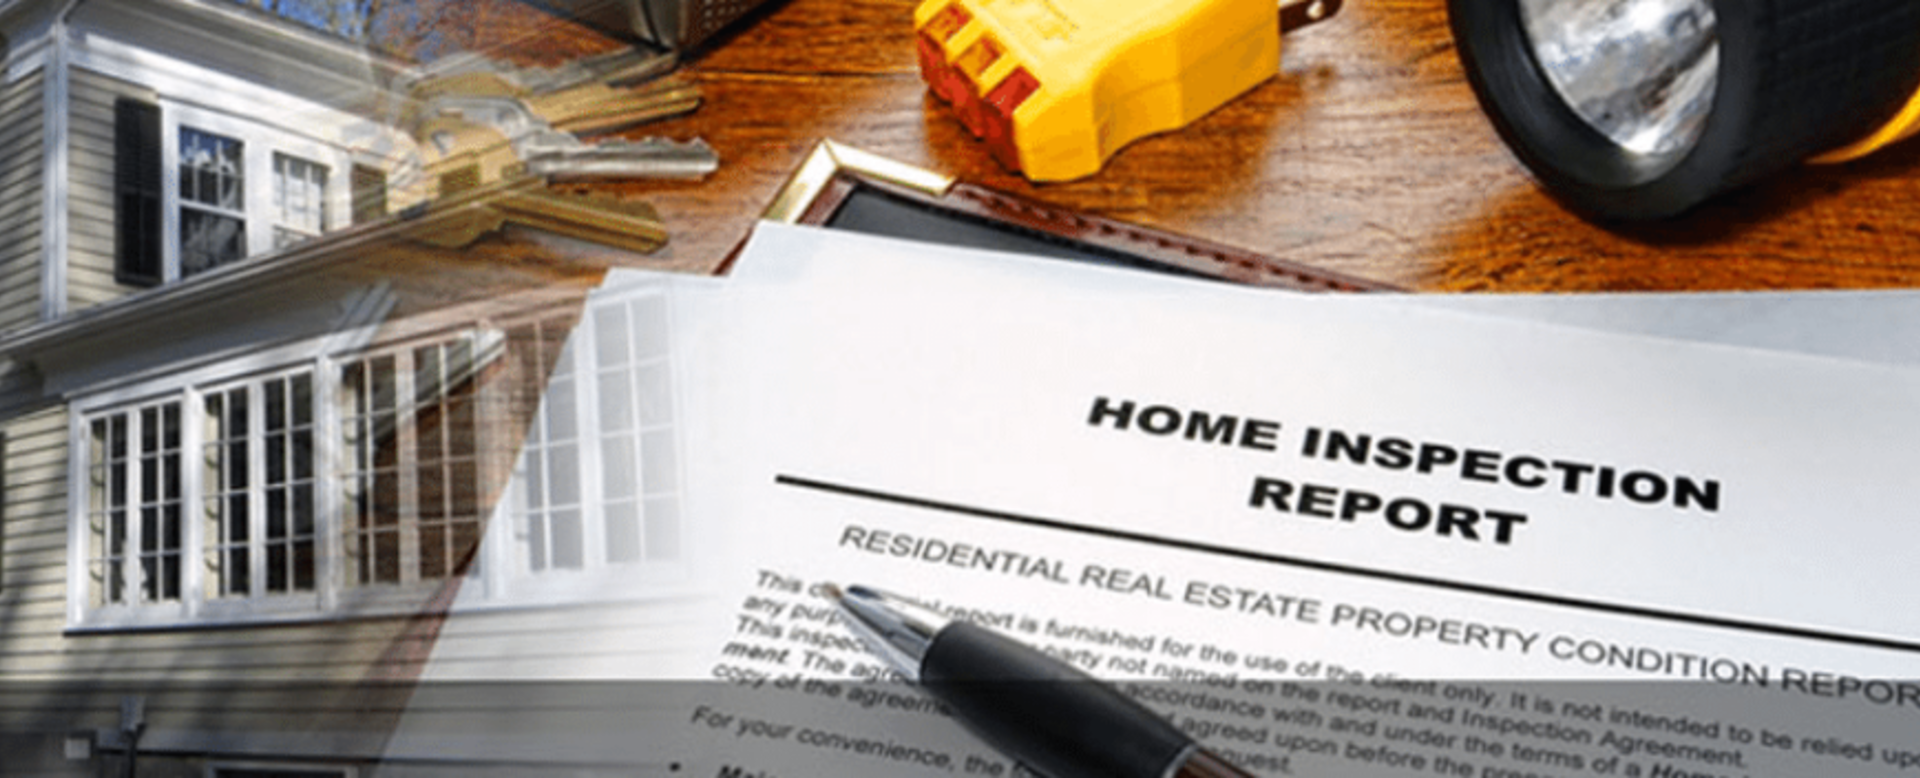 How to Choose a Home Inspector for Your New Home Purchase